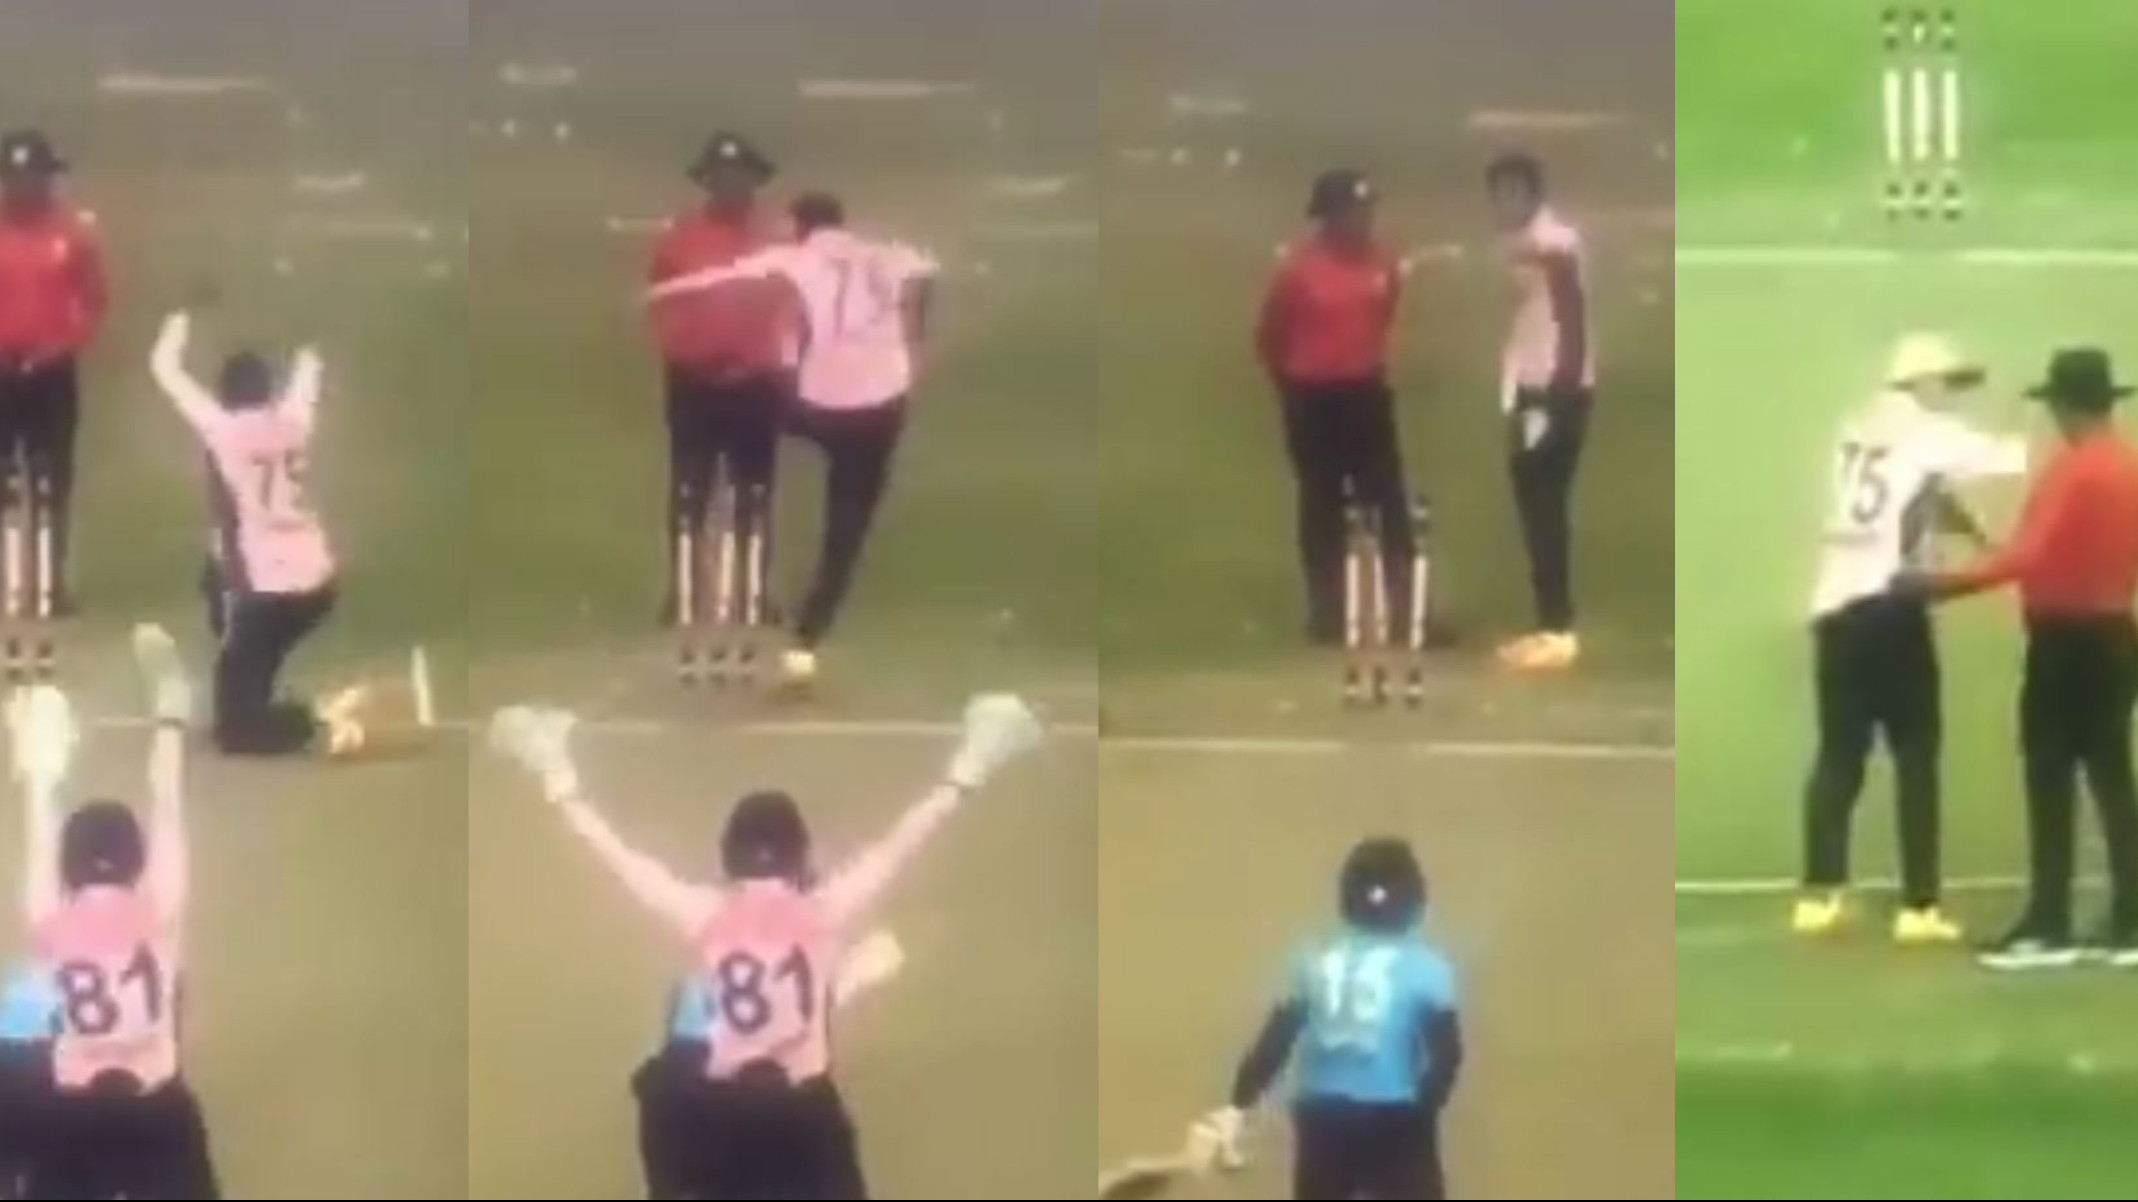 WATCH- Shakib Al Hasan argues with umpires, kicks and unearths stumps in two separate tantrums